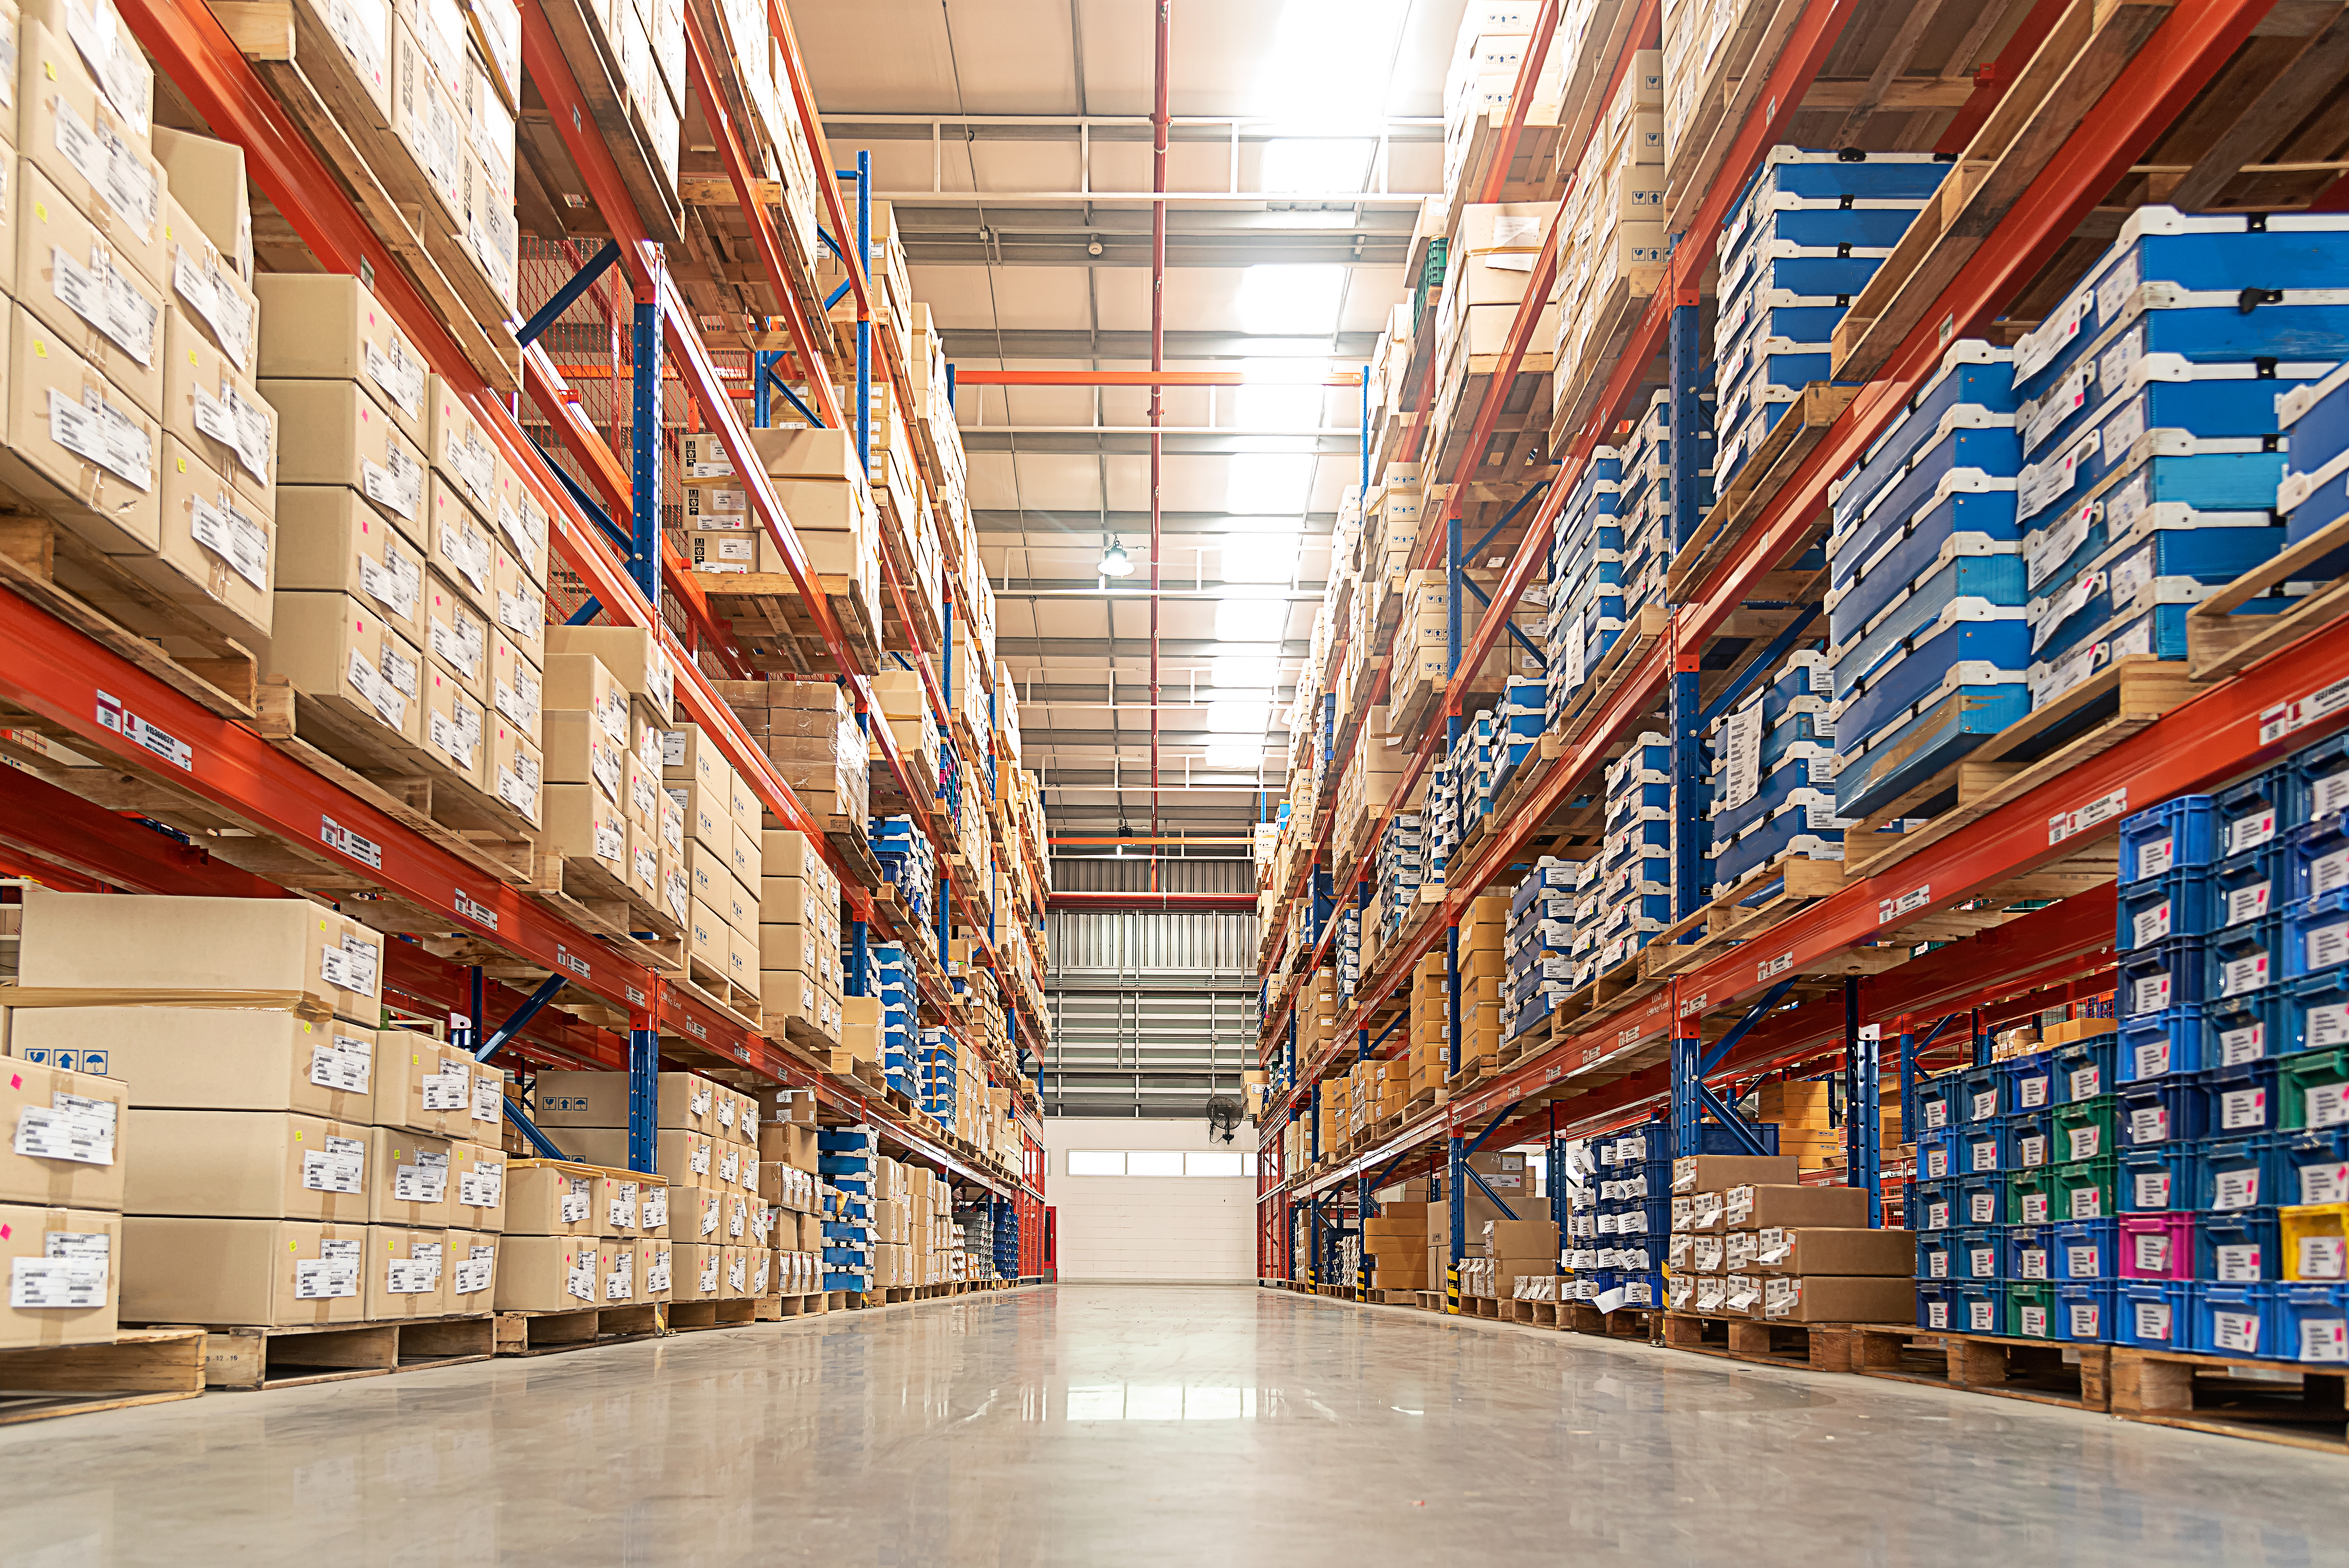 Warehouse Racking System: 6 Tips to Consider When Choosing Storage